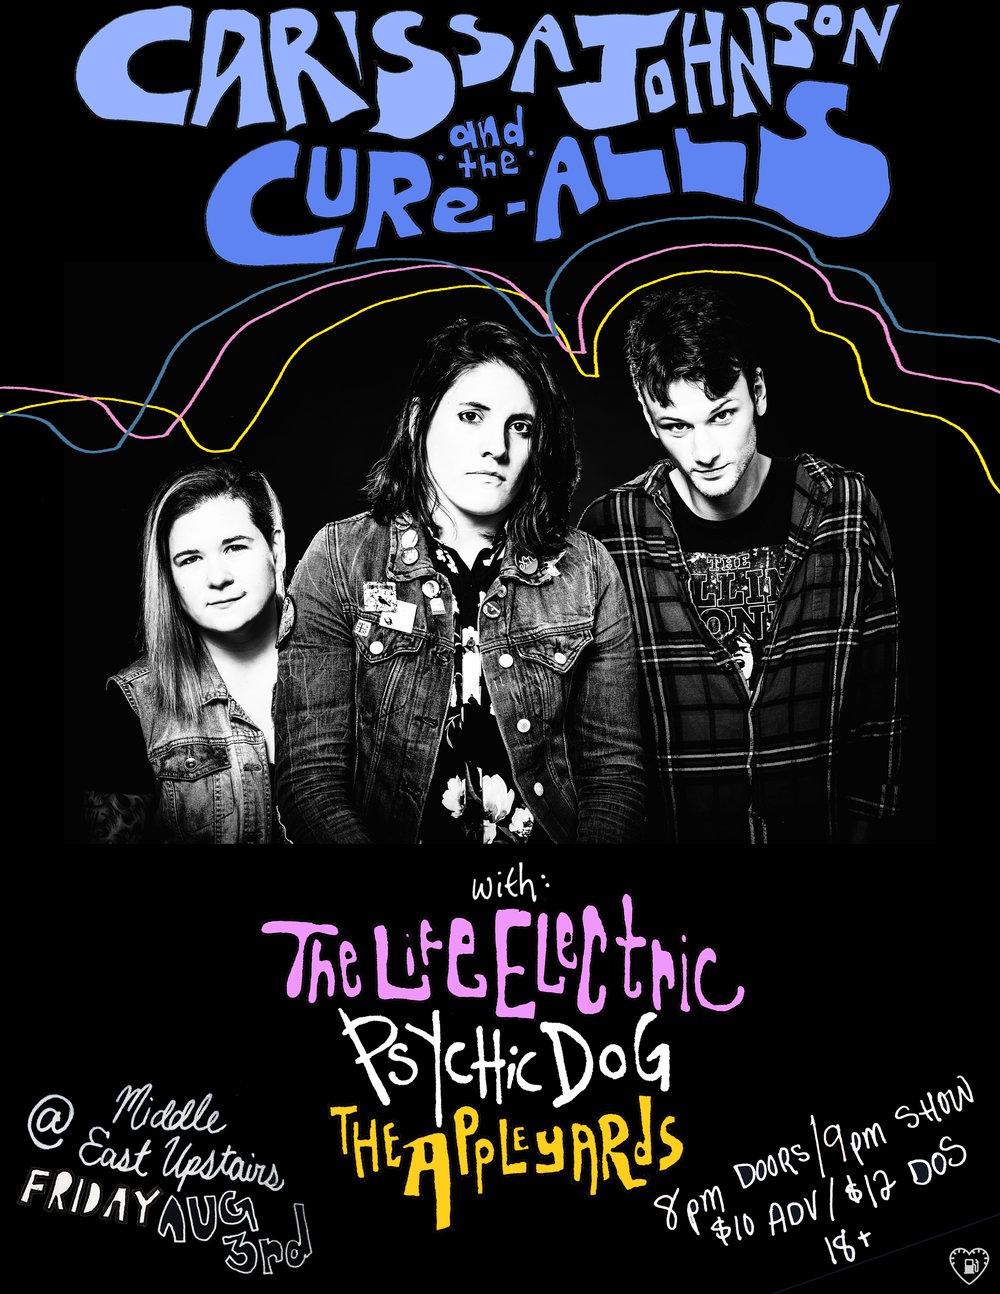 August 3rd 2018 at Middle East Upstairs in Cambridge, MA!  Tix:  https://www.ticketweb.com/event/carissa-johnson-the-cure-middle-east-upstairs-tickets/8453485?pl=mideastclub&edpPlParam=%3Fpl%3Dmideastclub